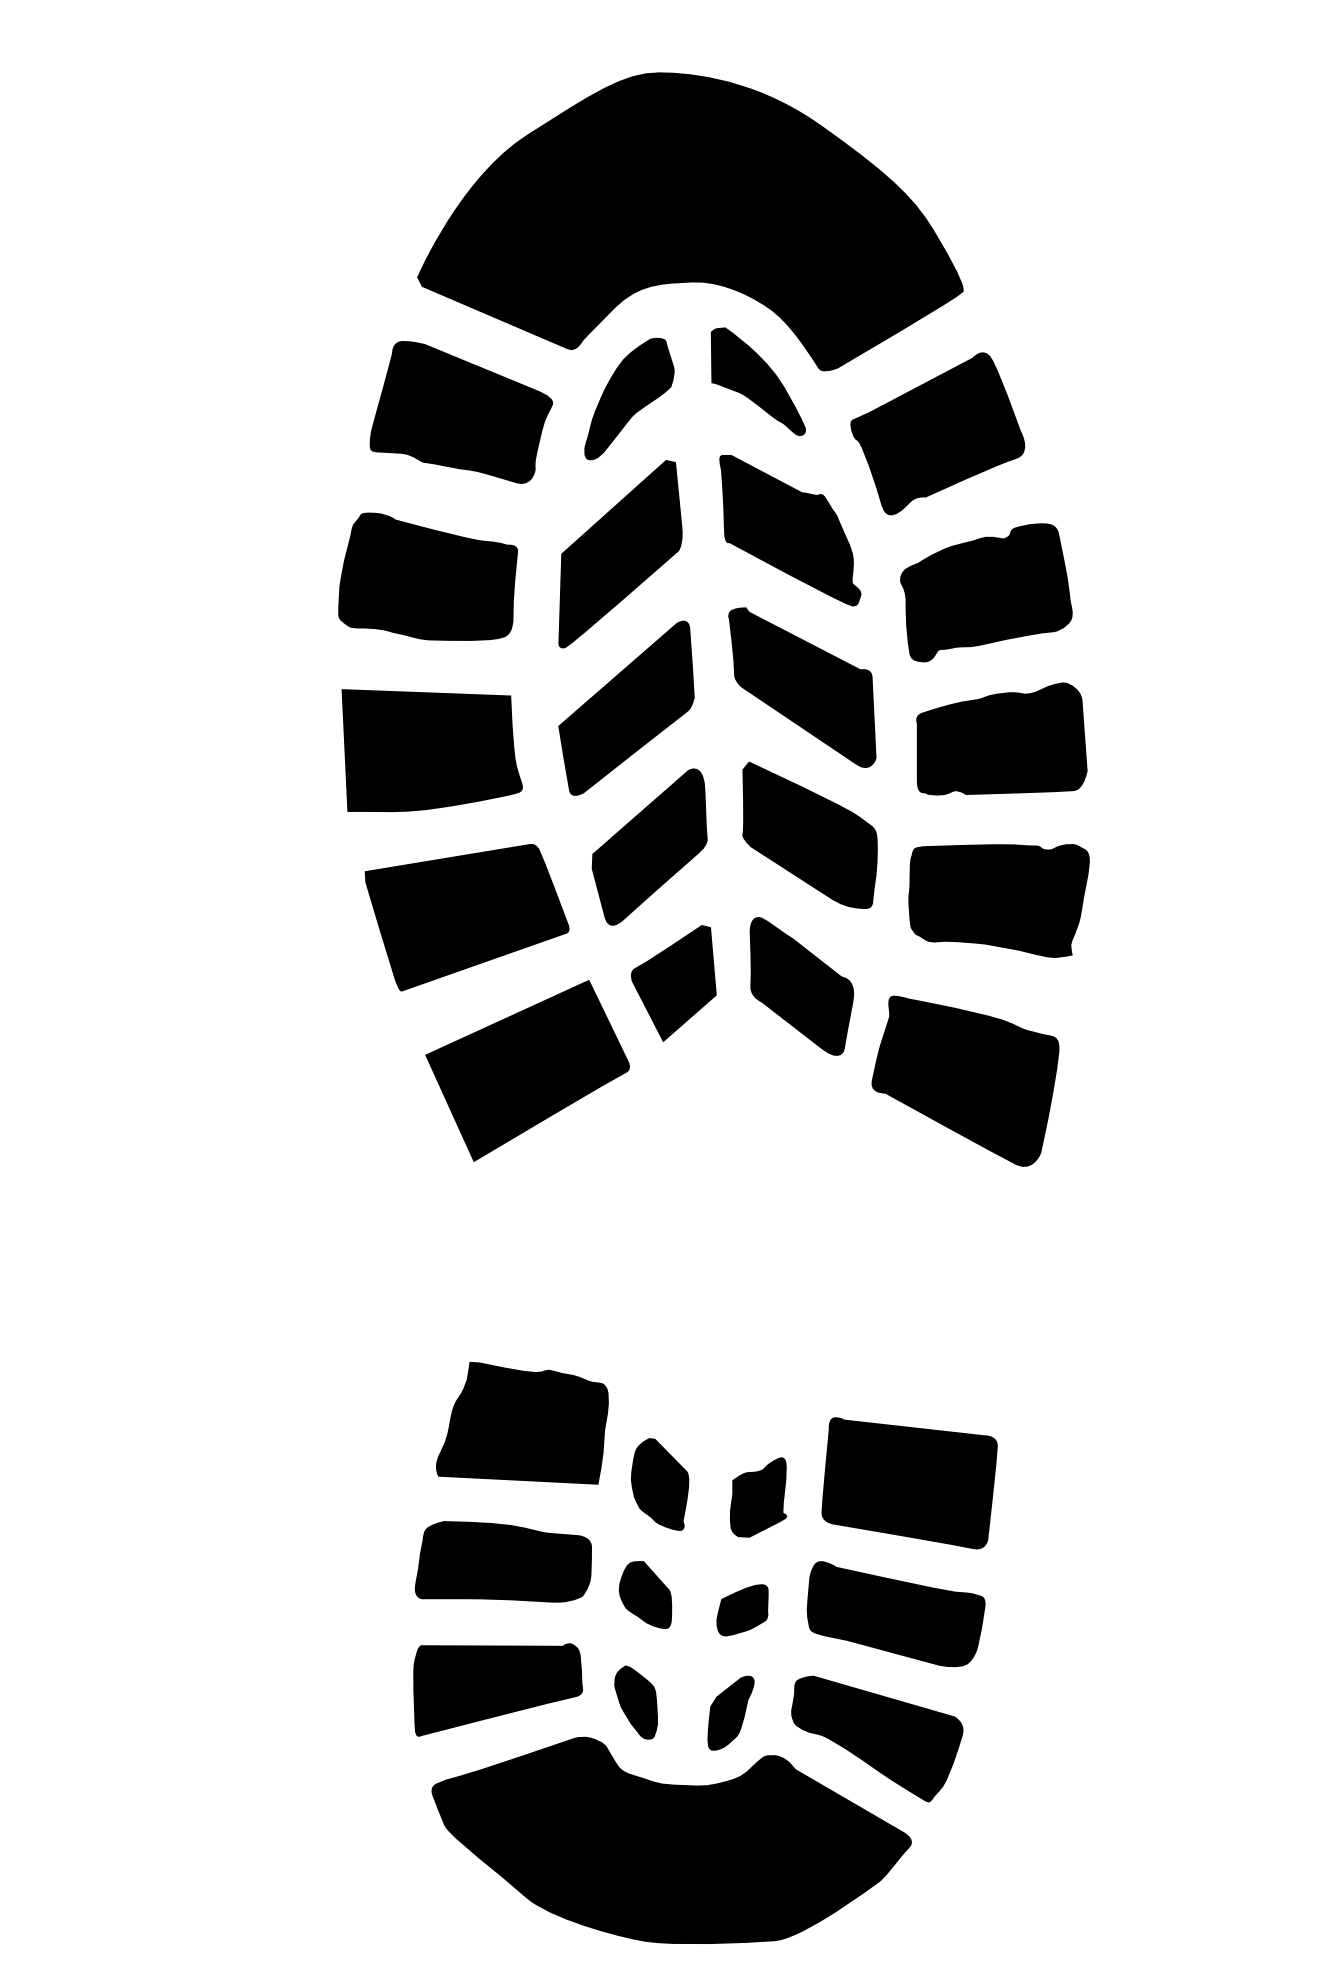 Running shoe print png. Boot prints camping party